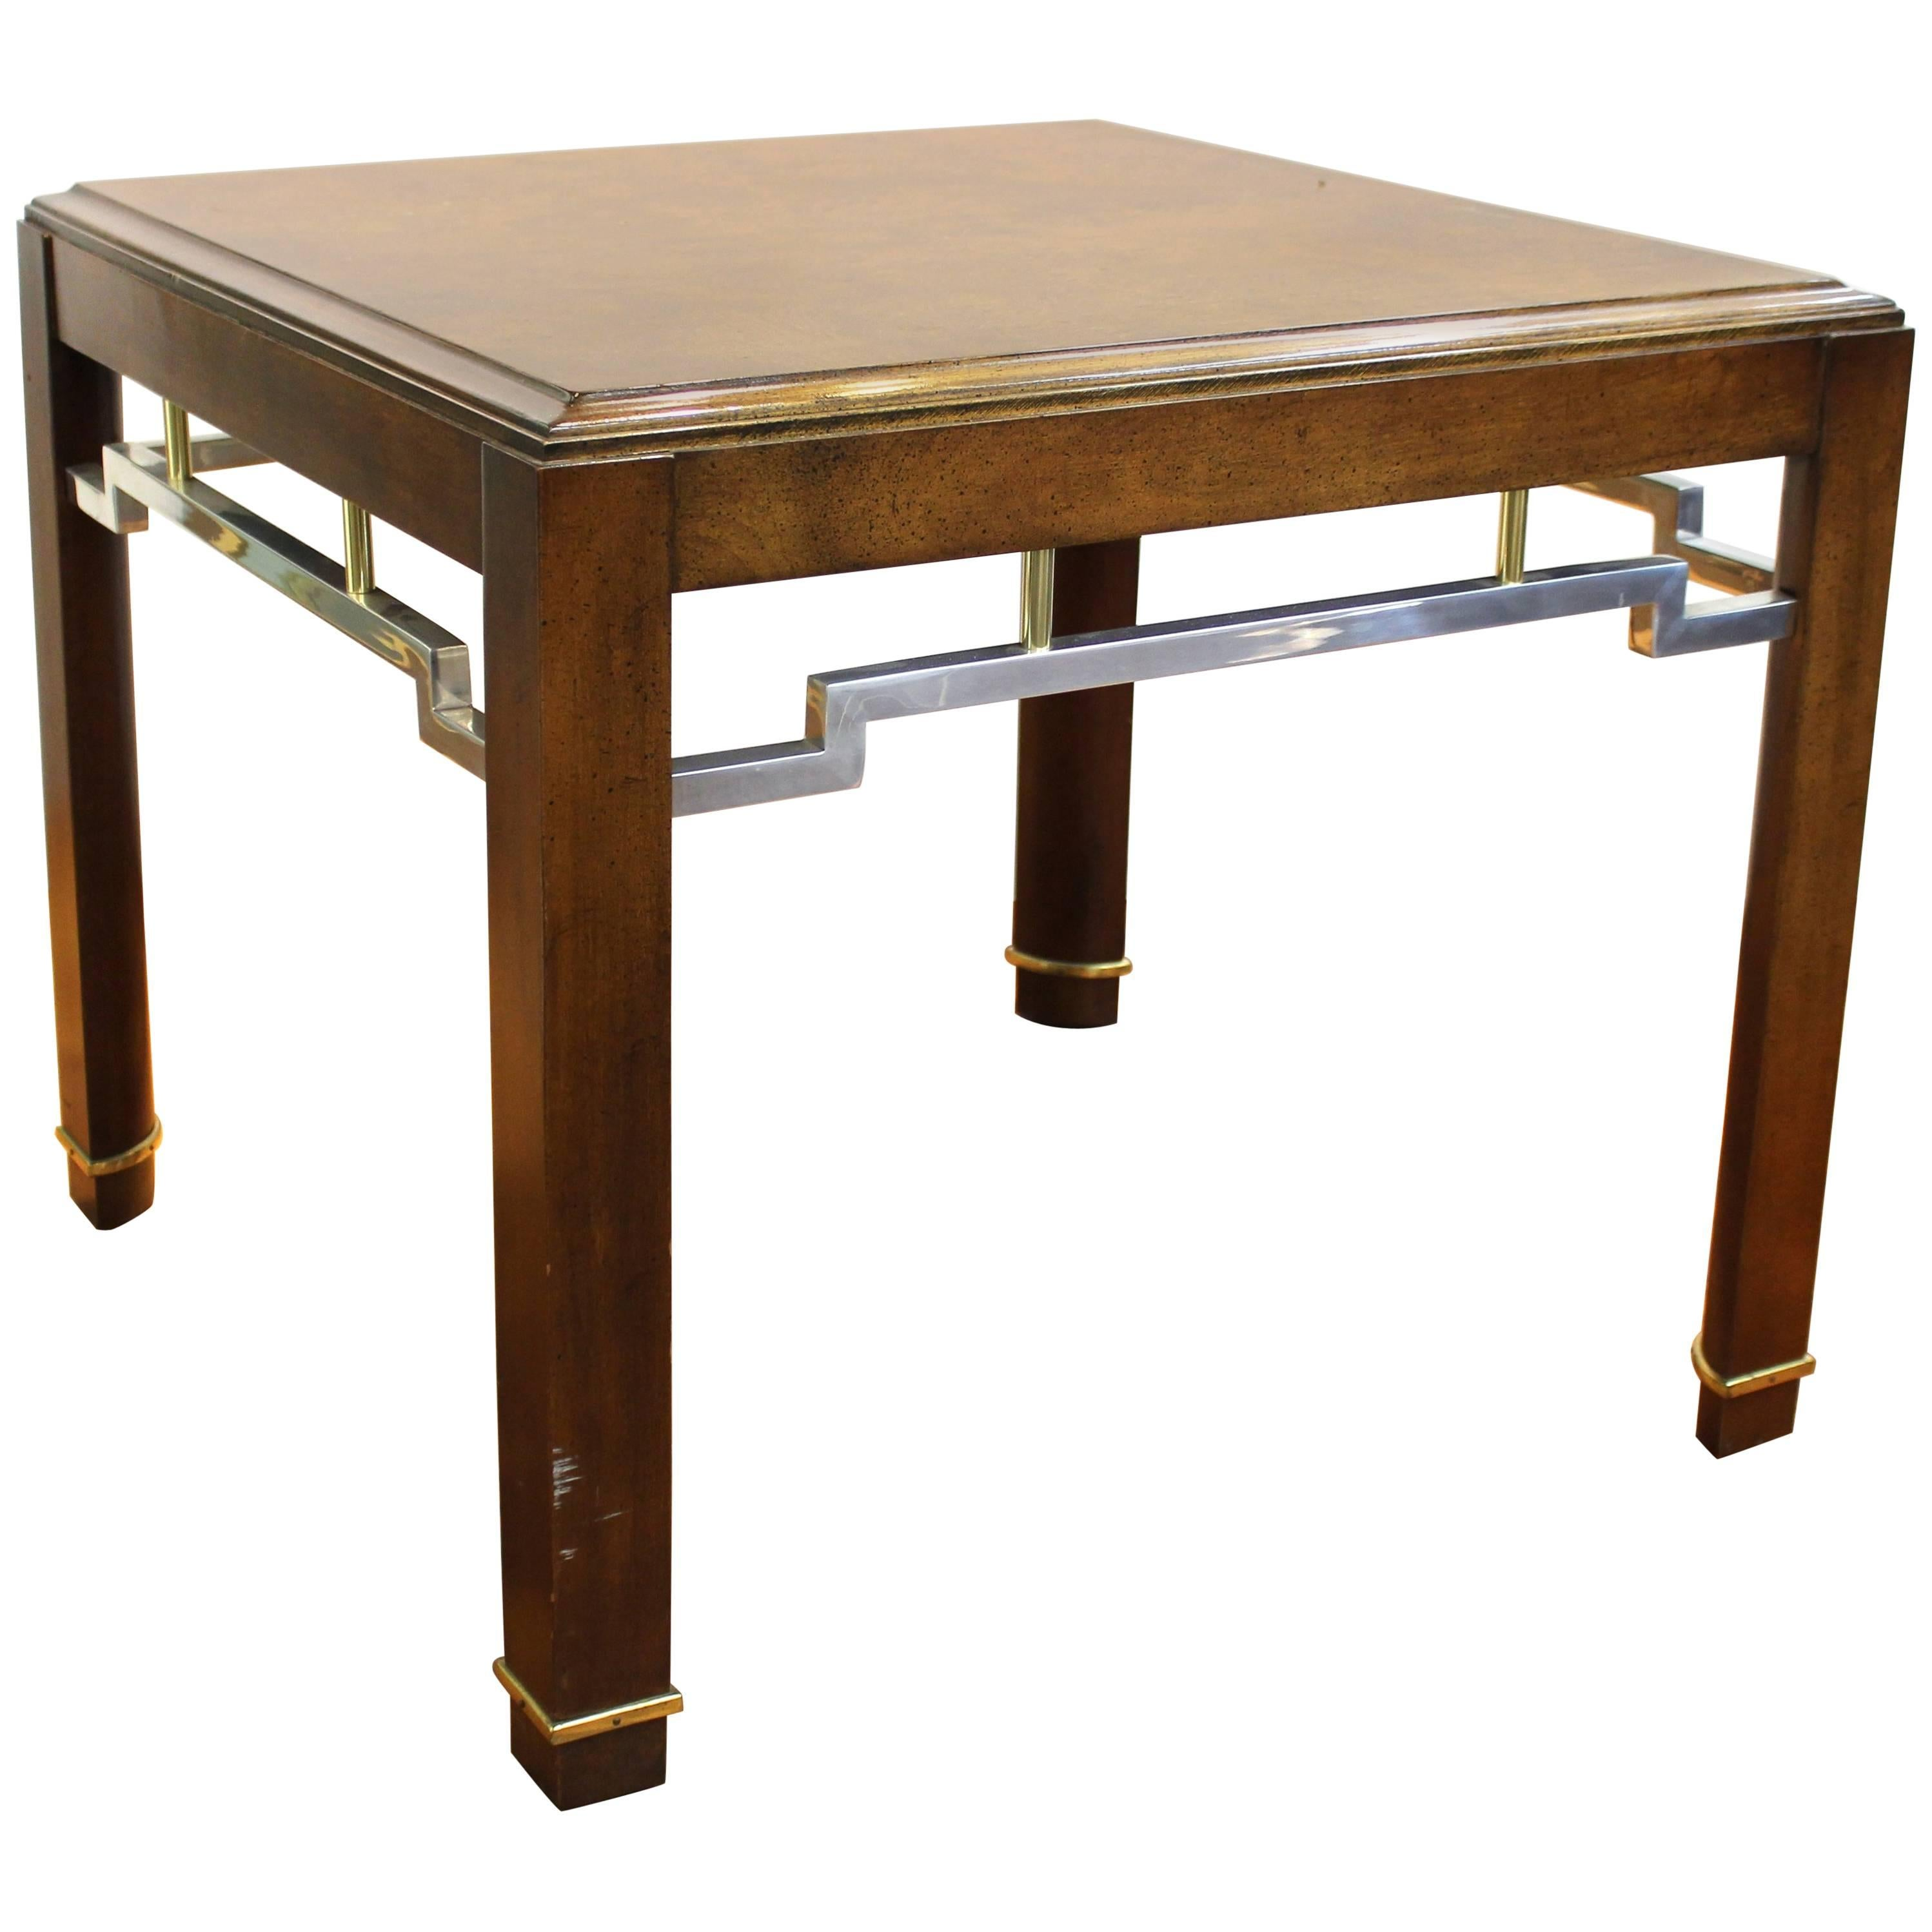 Asian Style Centre or Side Table in Wood and Metal